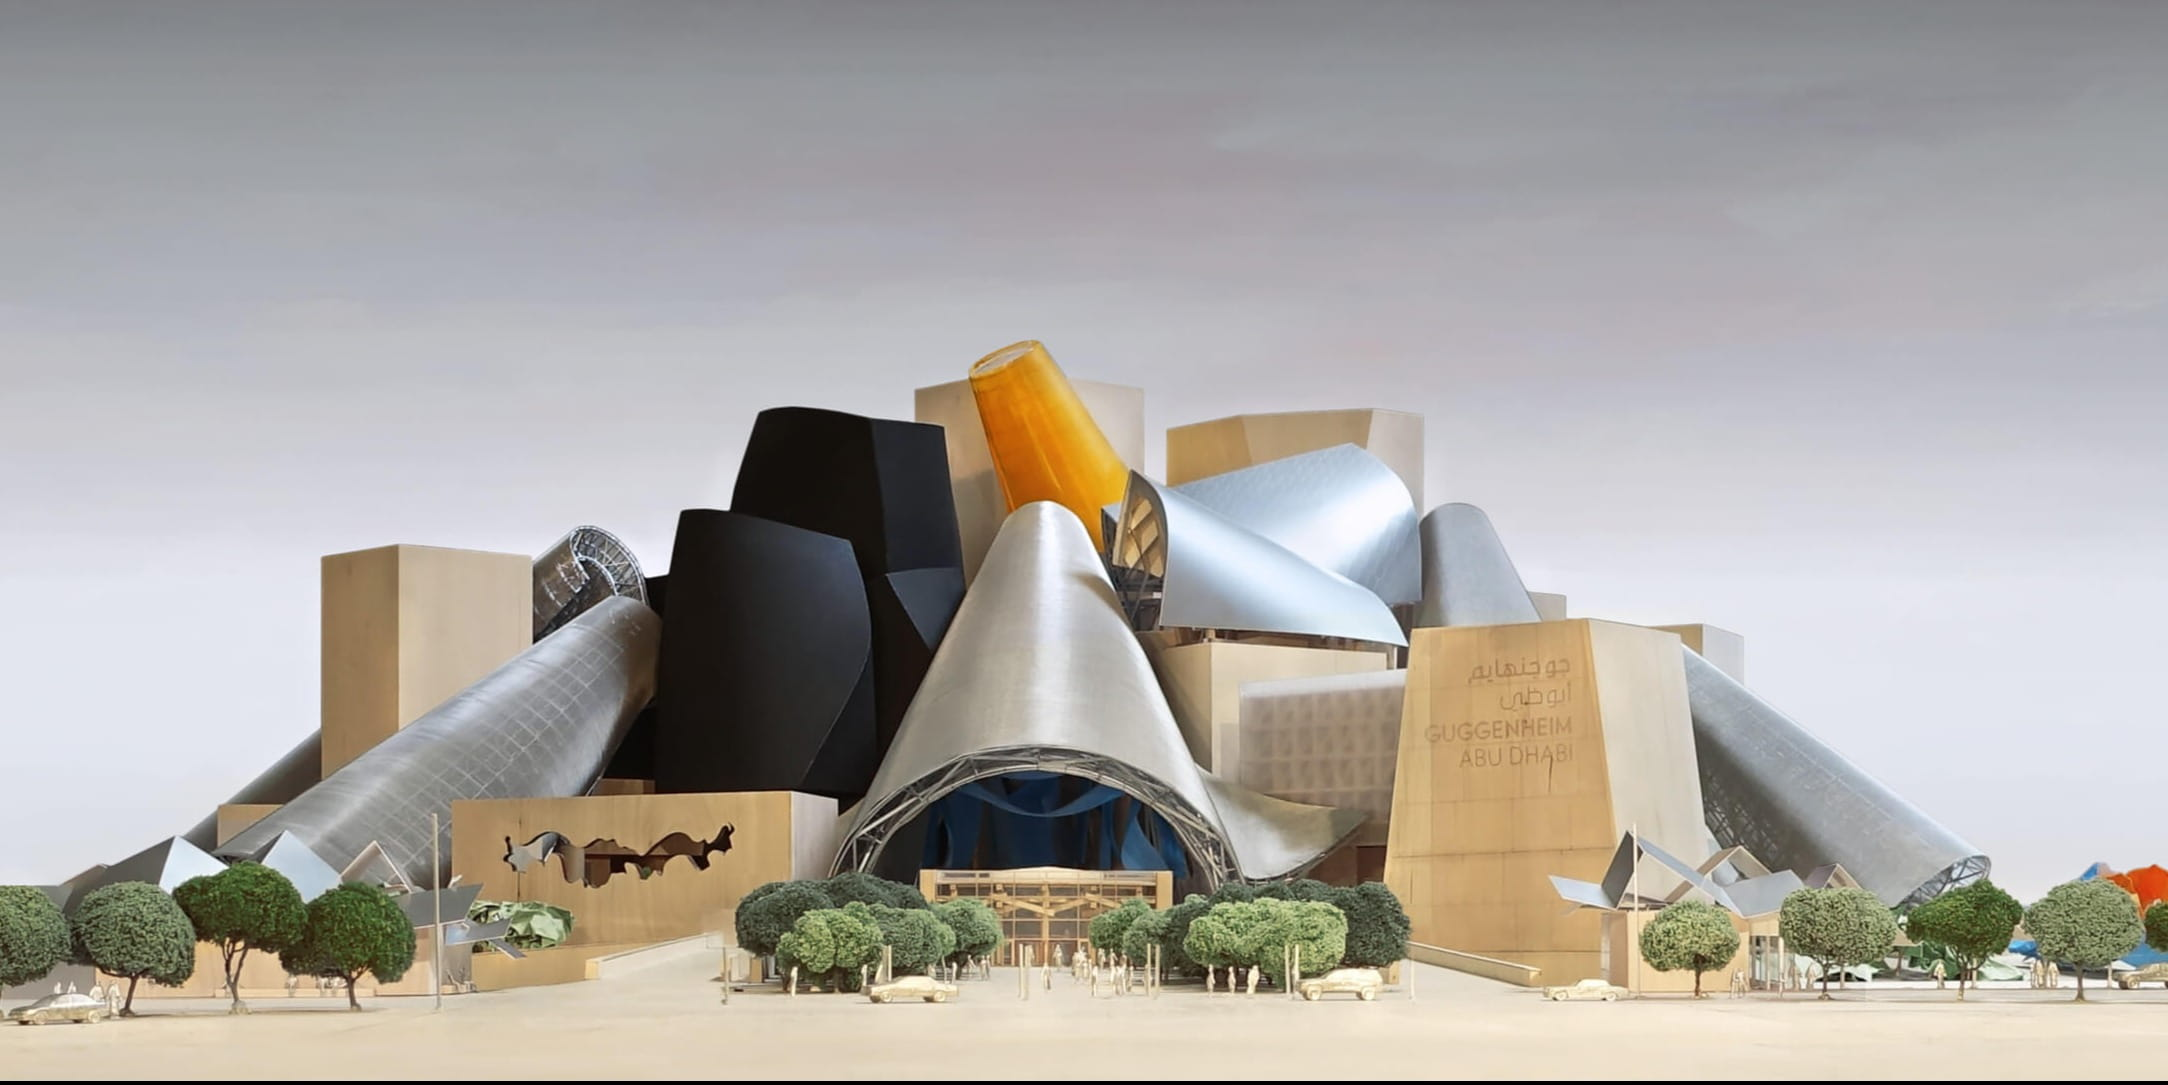 Guggenheim Museum in Abu Dhabi, designed by Frank Gehry, is finally set to open by 2025